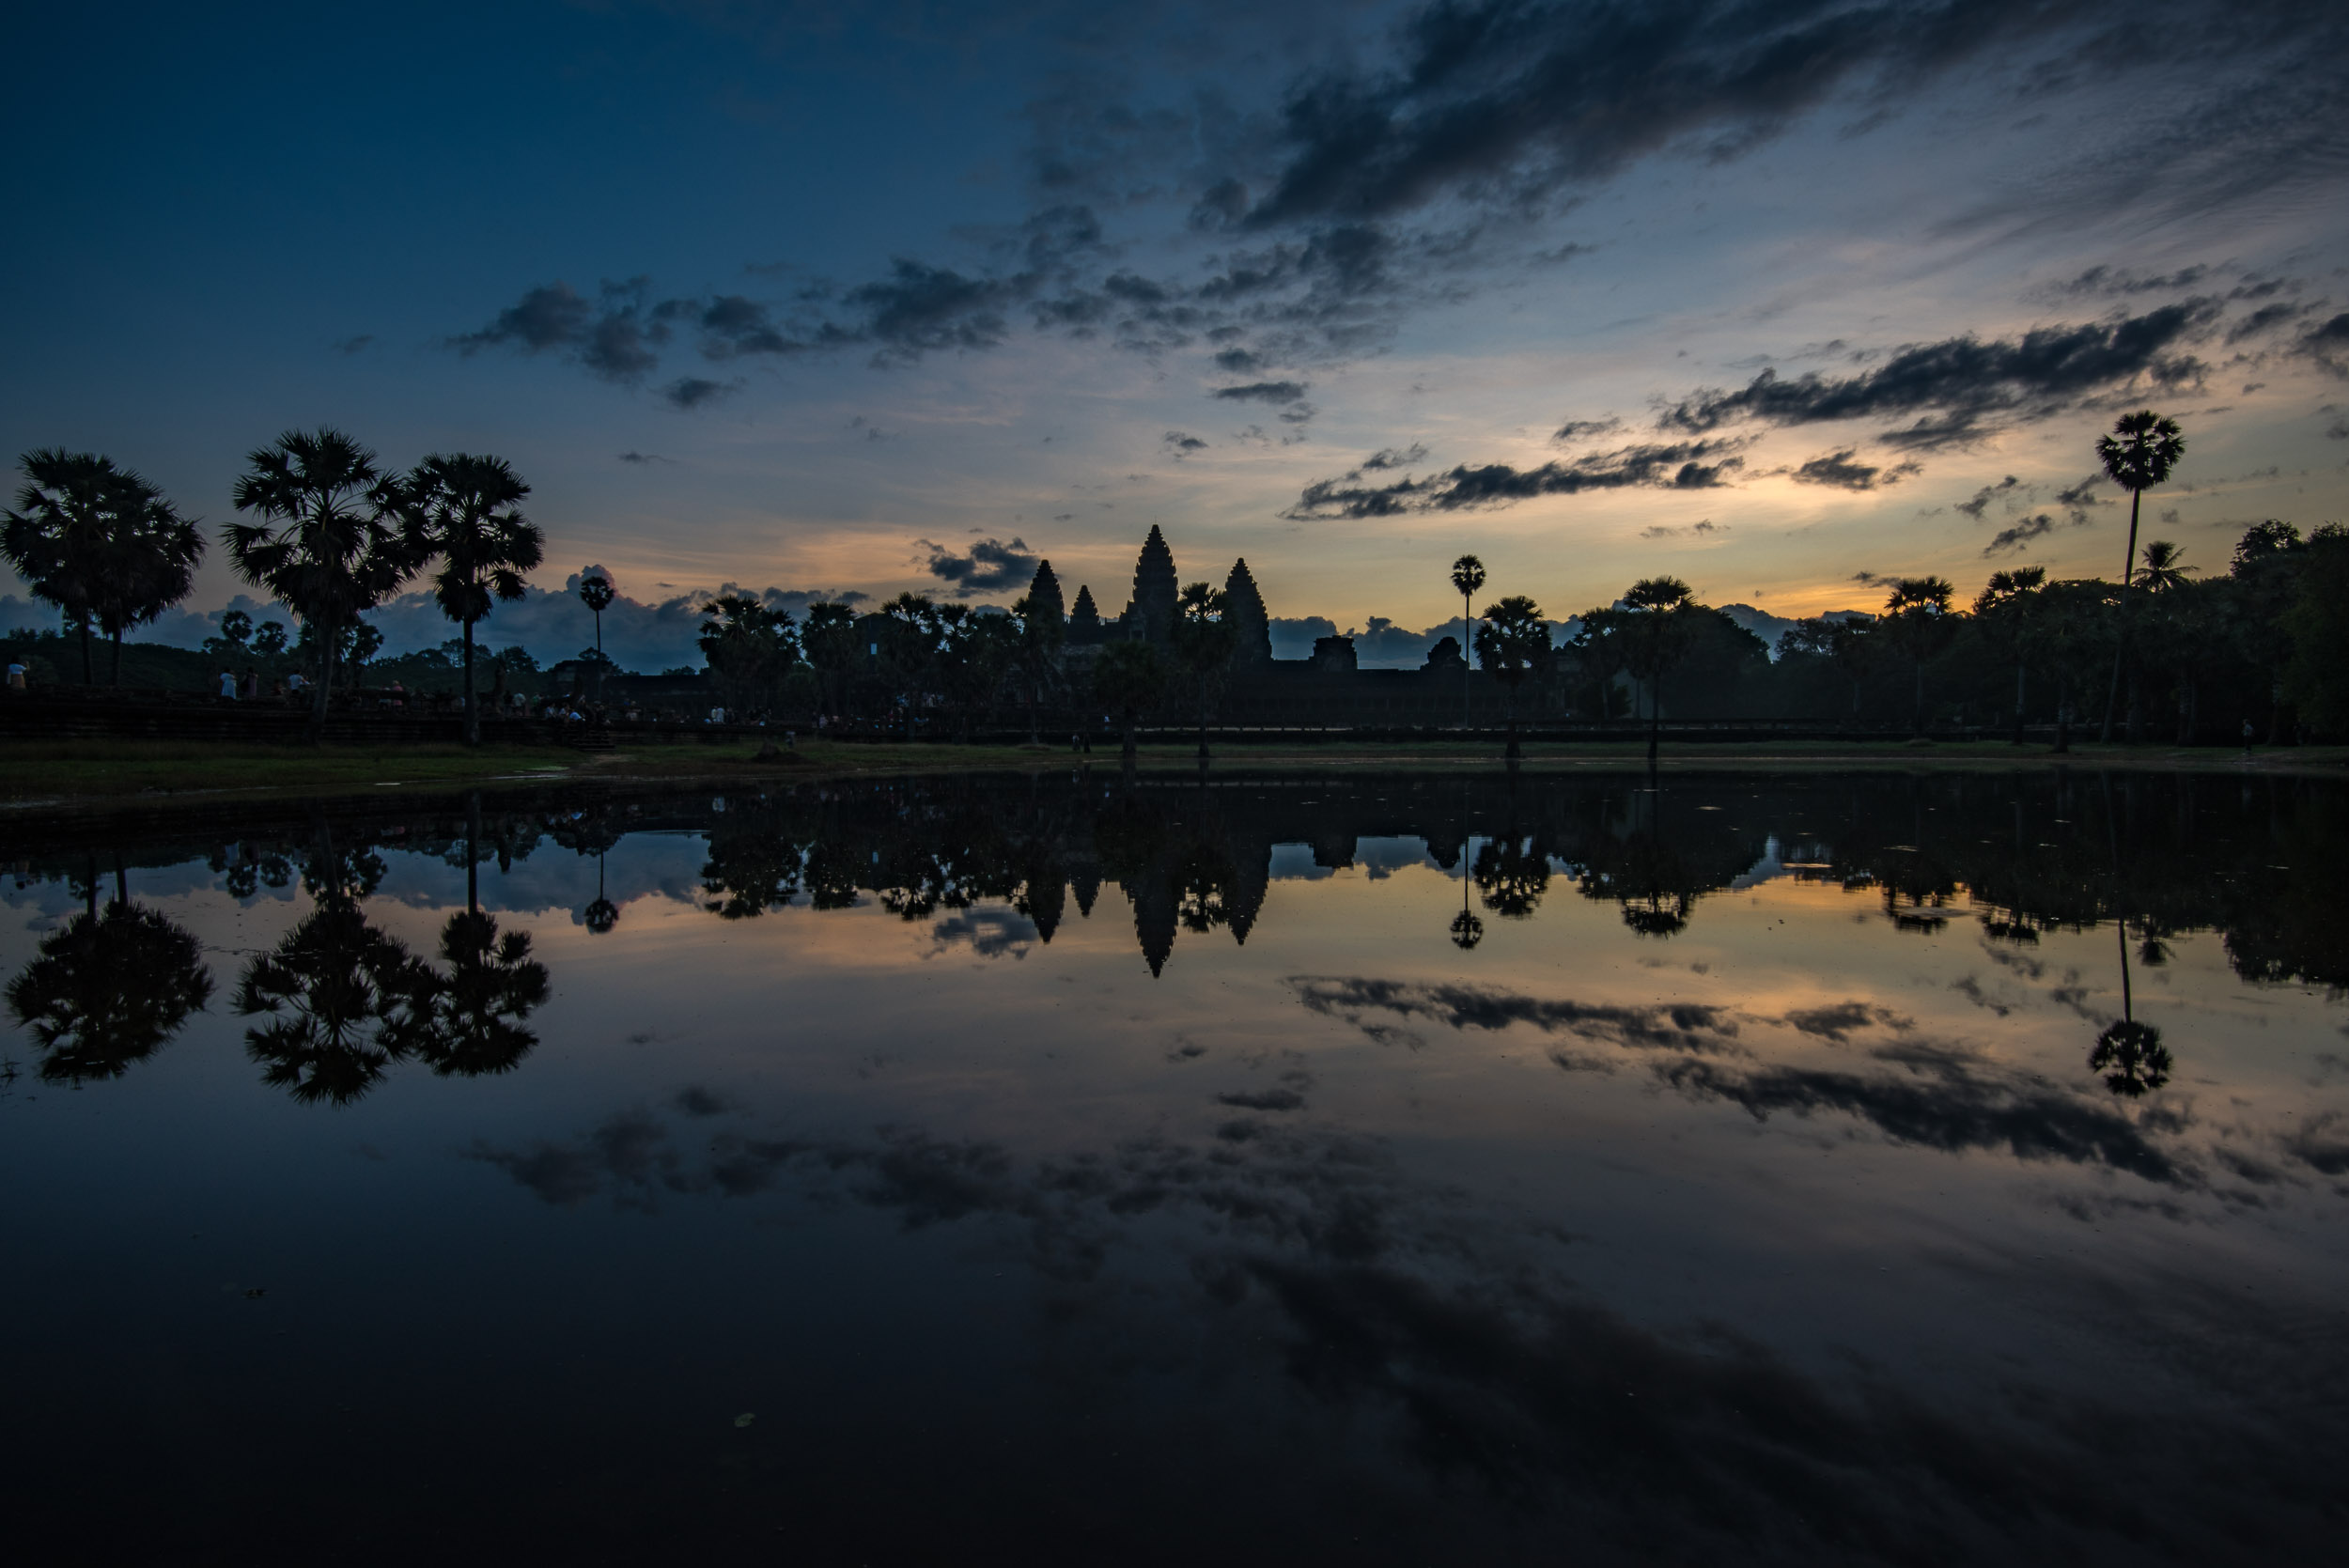 Angkor Wat in the morning light